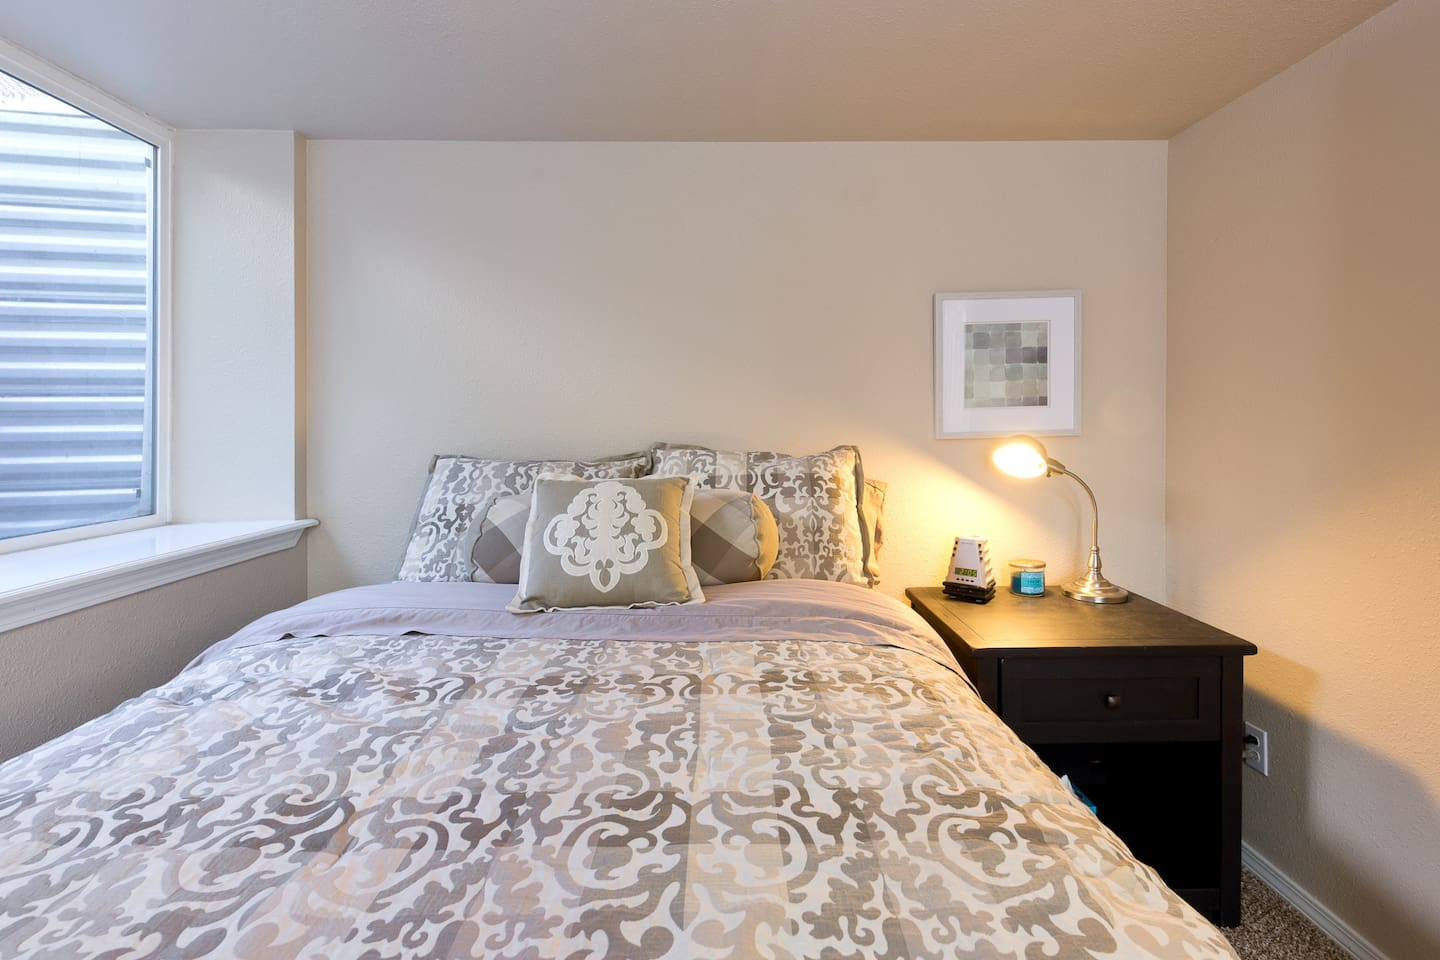 Welcome to our home!  A comfortable queen size bed in a quiet room awaits you!